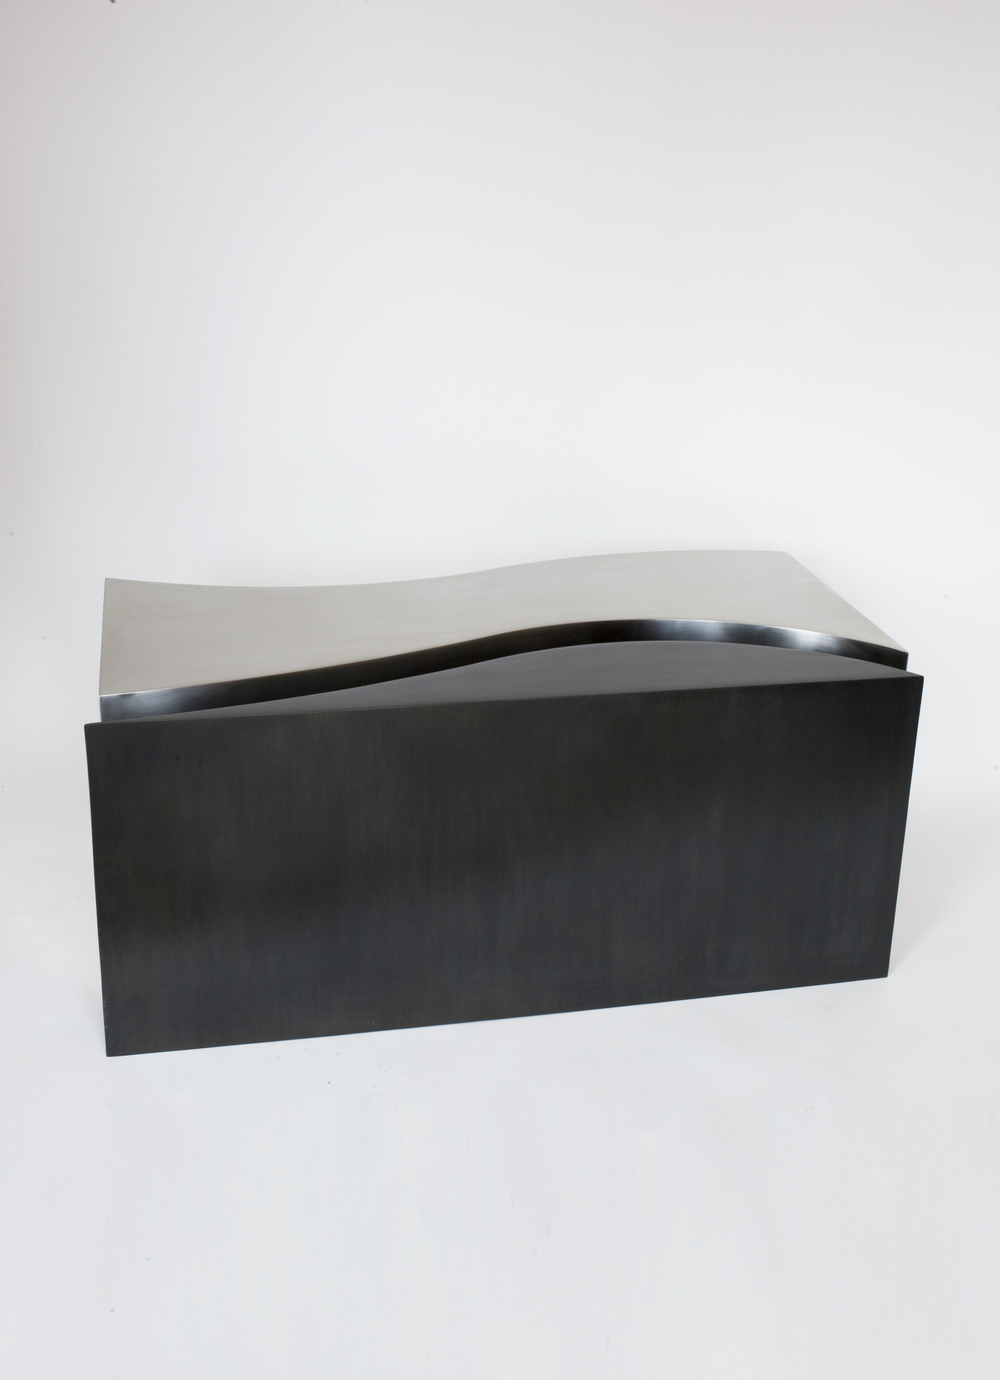 """FIT TABLE RAW AND BLACKENED STEEL 42""""L x 19""""W x 18""""H PDF / 1STDIBS IN STOCK / MADE TO ORDER"""